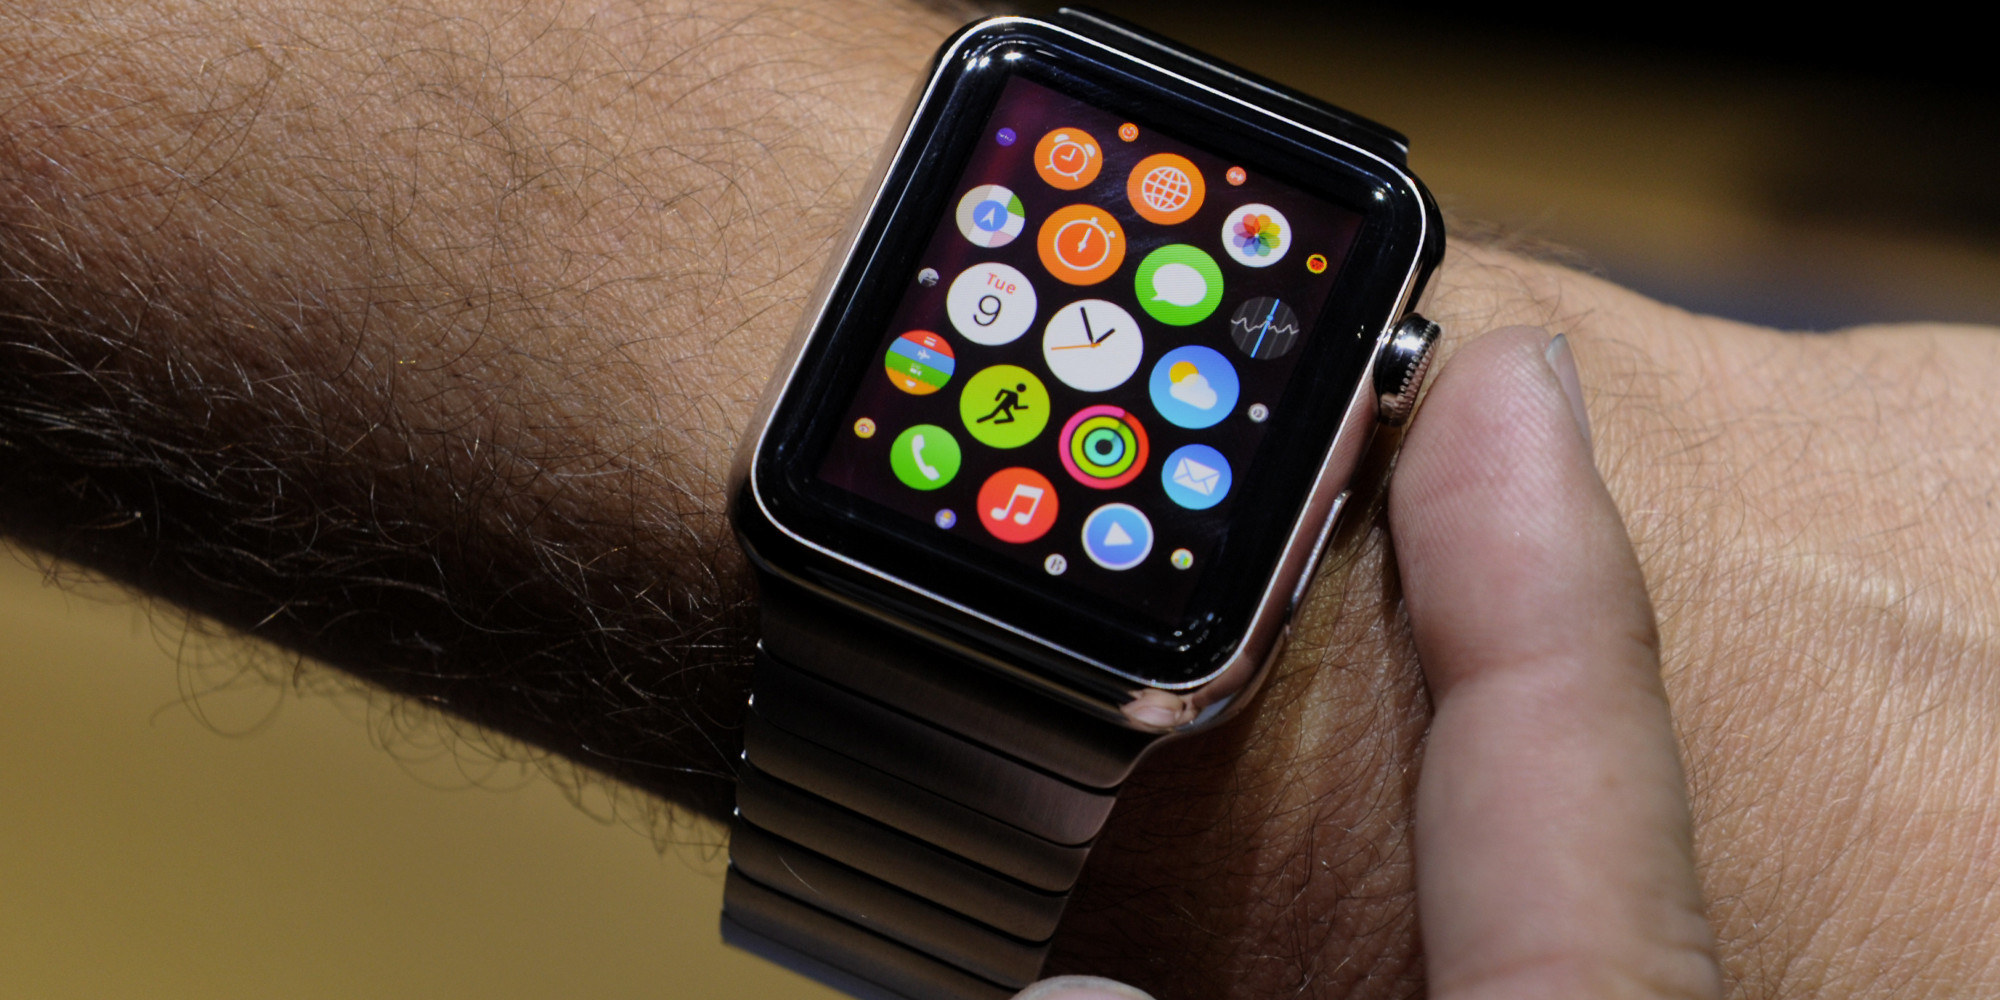 Morgan Stanley expects initial Apple Watch sales to top 30 million